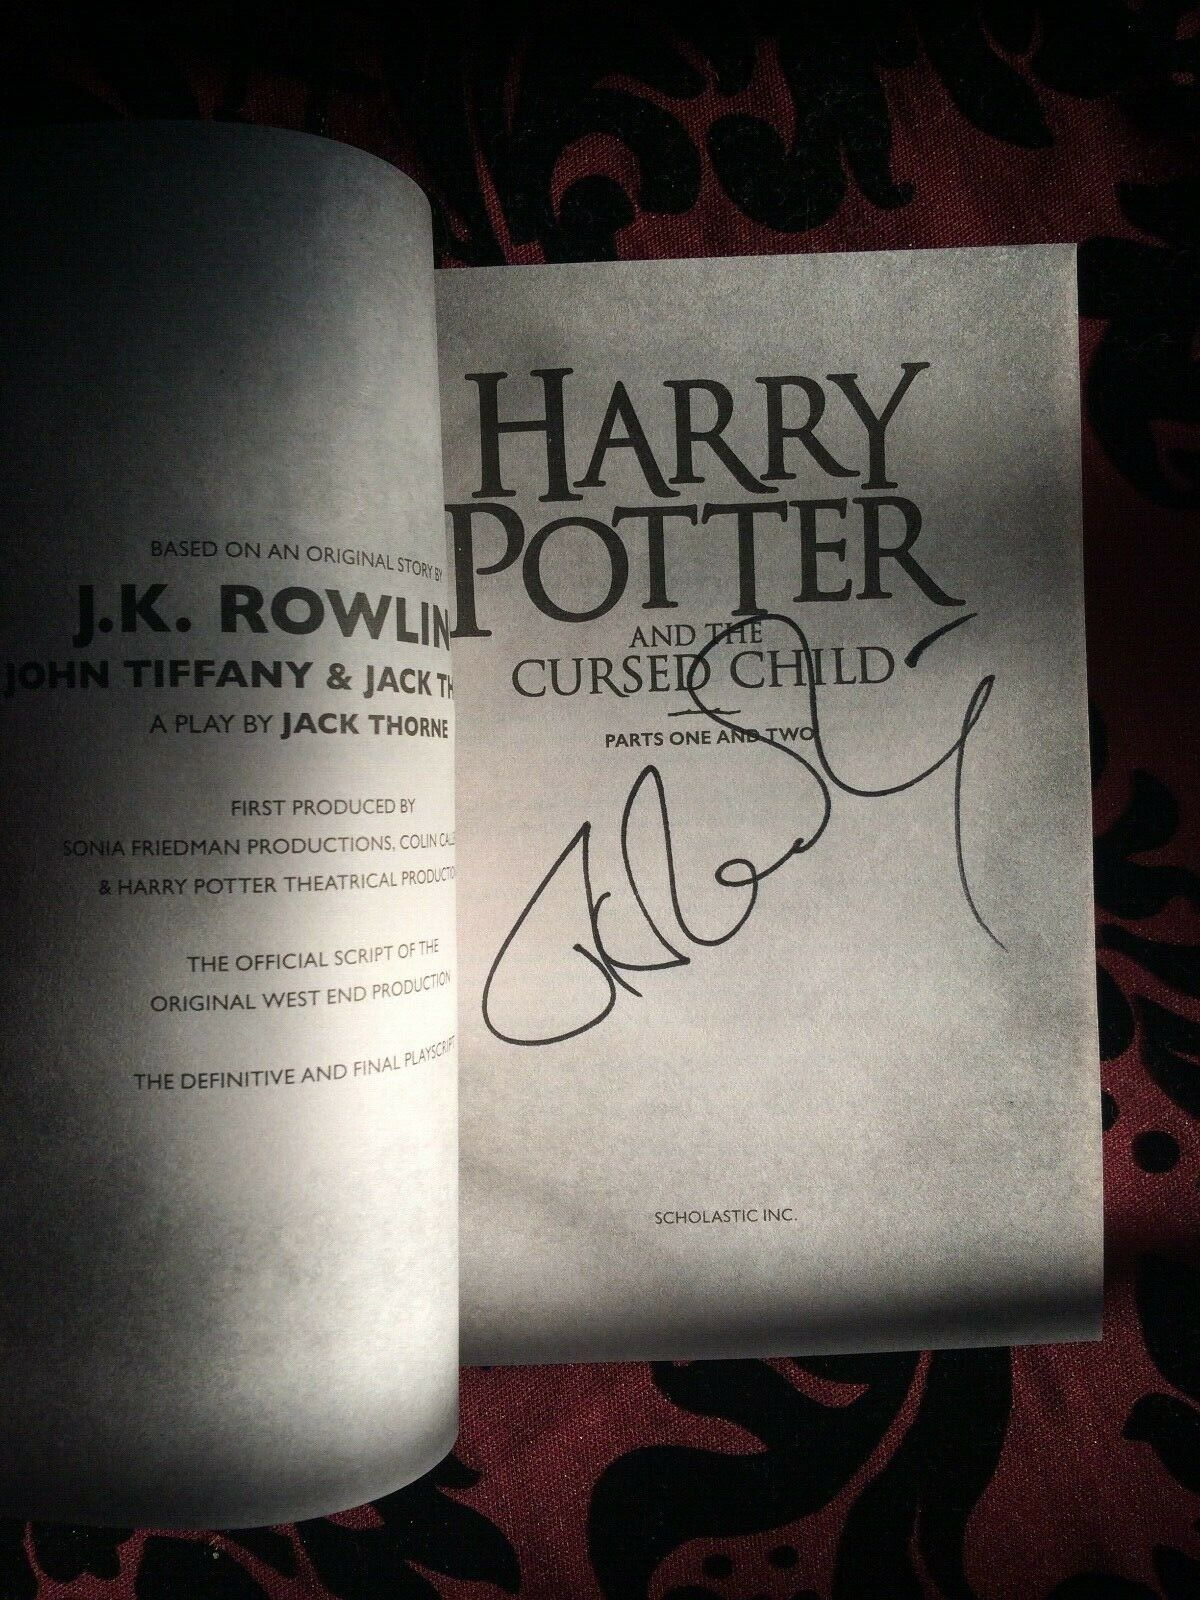 JK Rowling Signature Forgery found on eBay